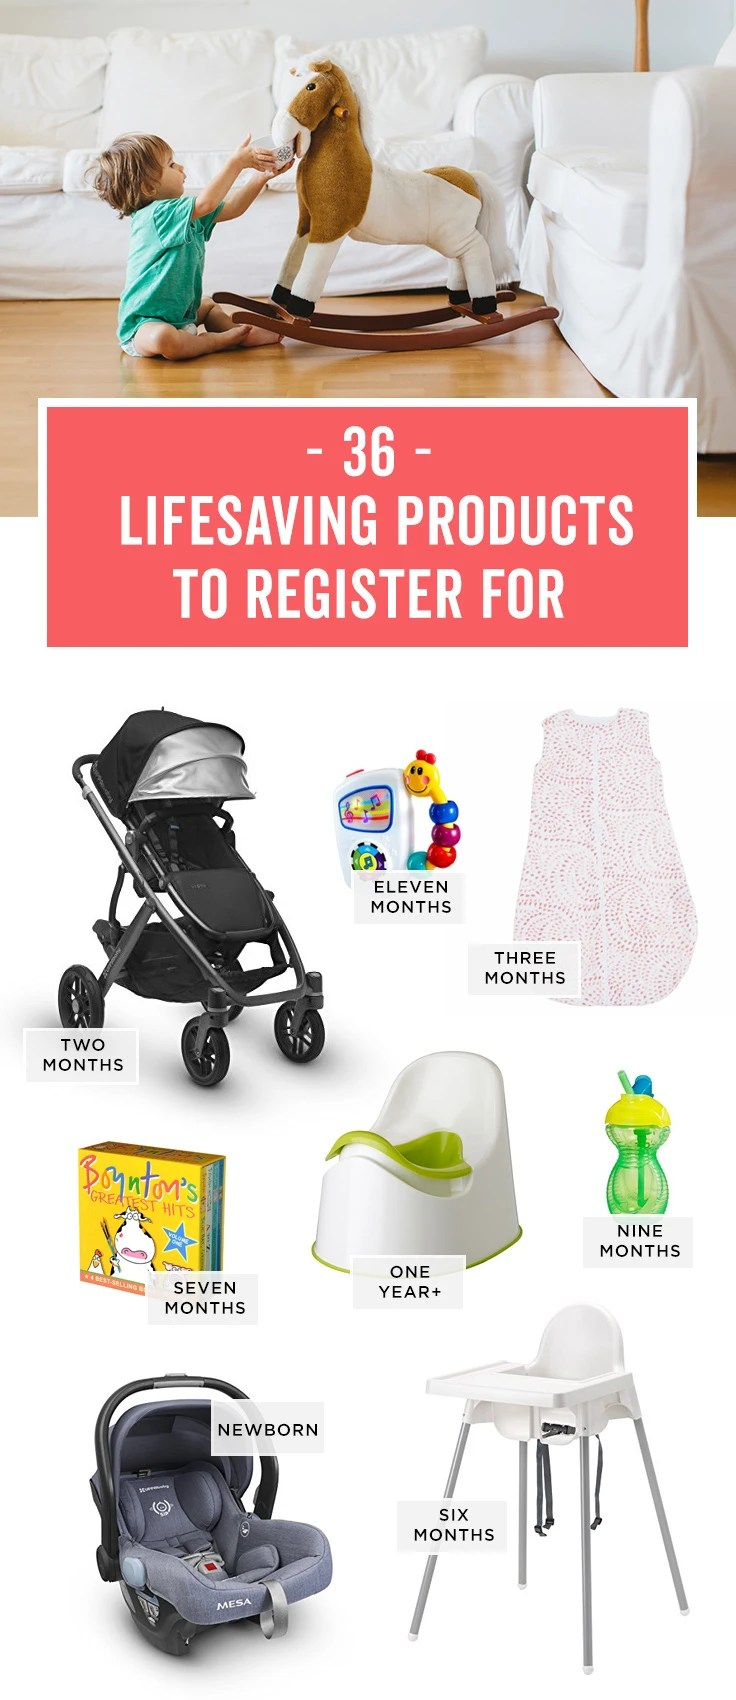 Baby Items List With Pictures : items, pictures, Basics, Month, Registry